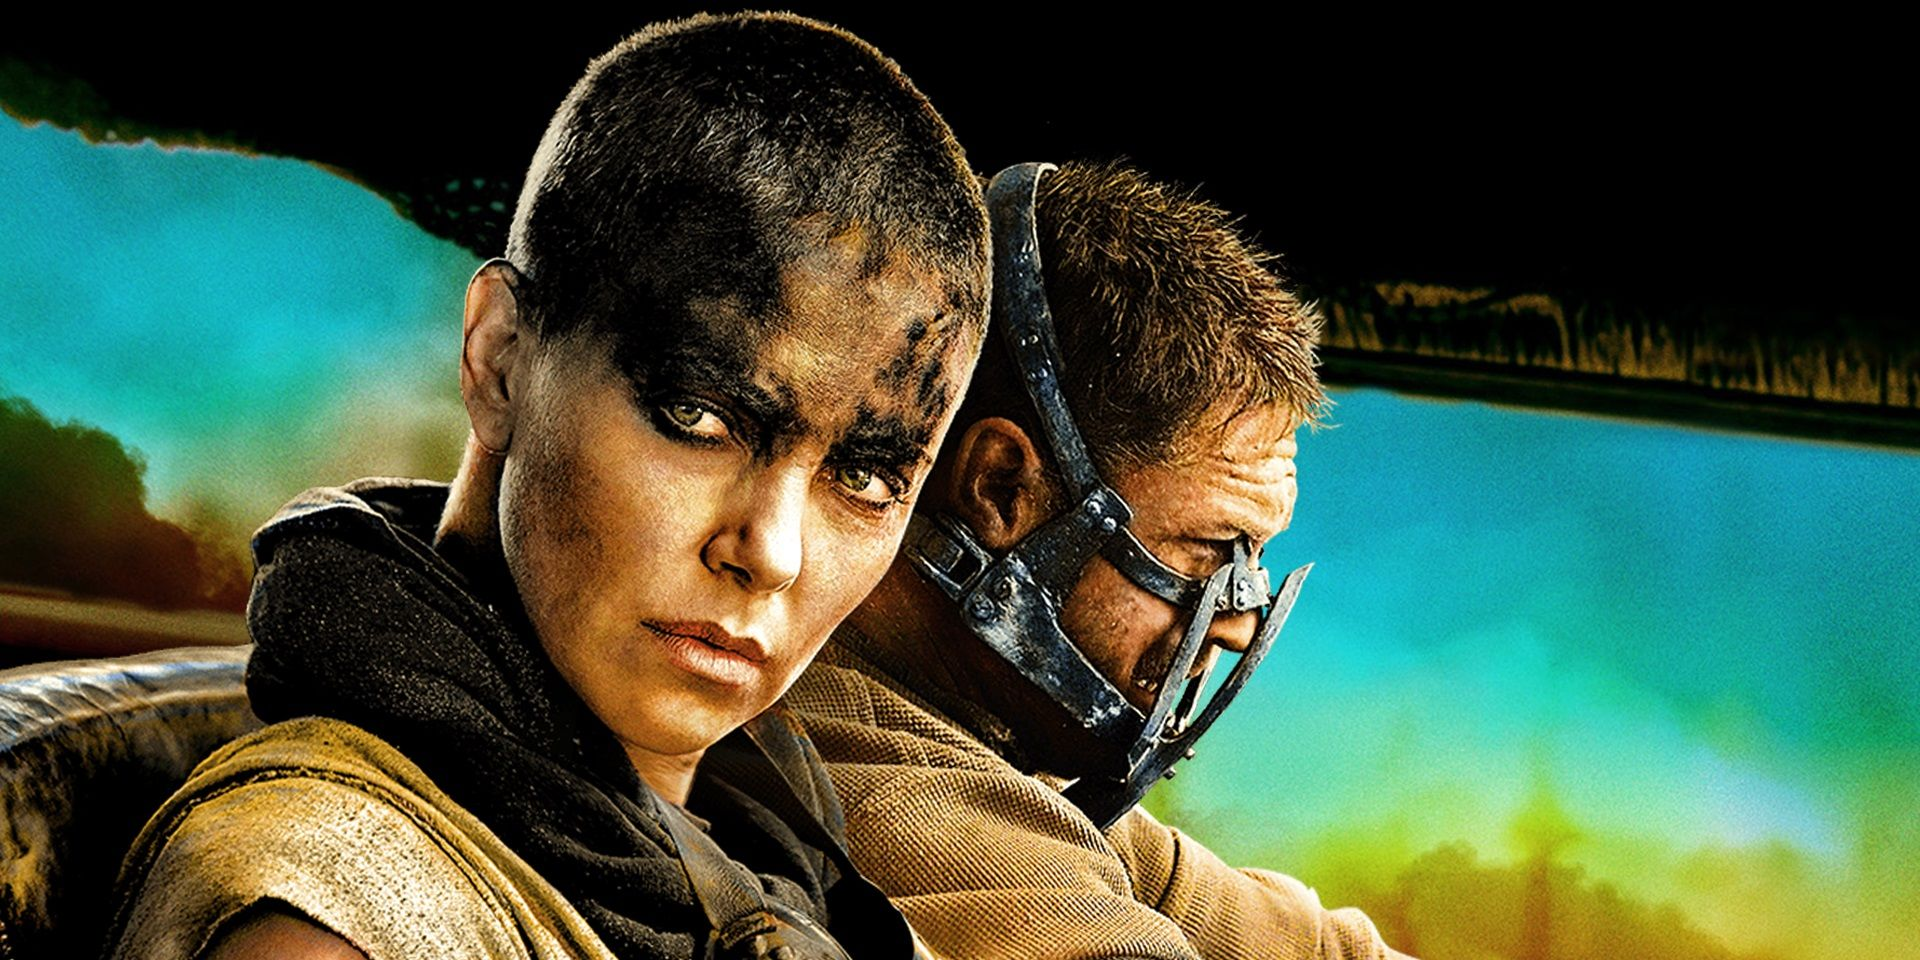 The Furiosa Prequel Can Set The Stage For A Mad Max Cinematic Universe